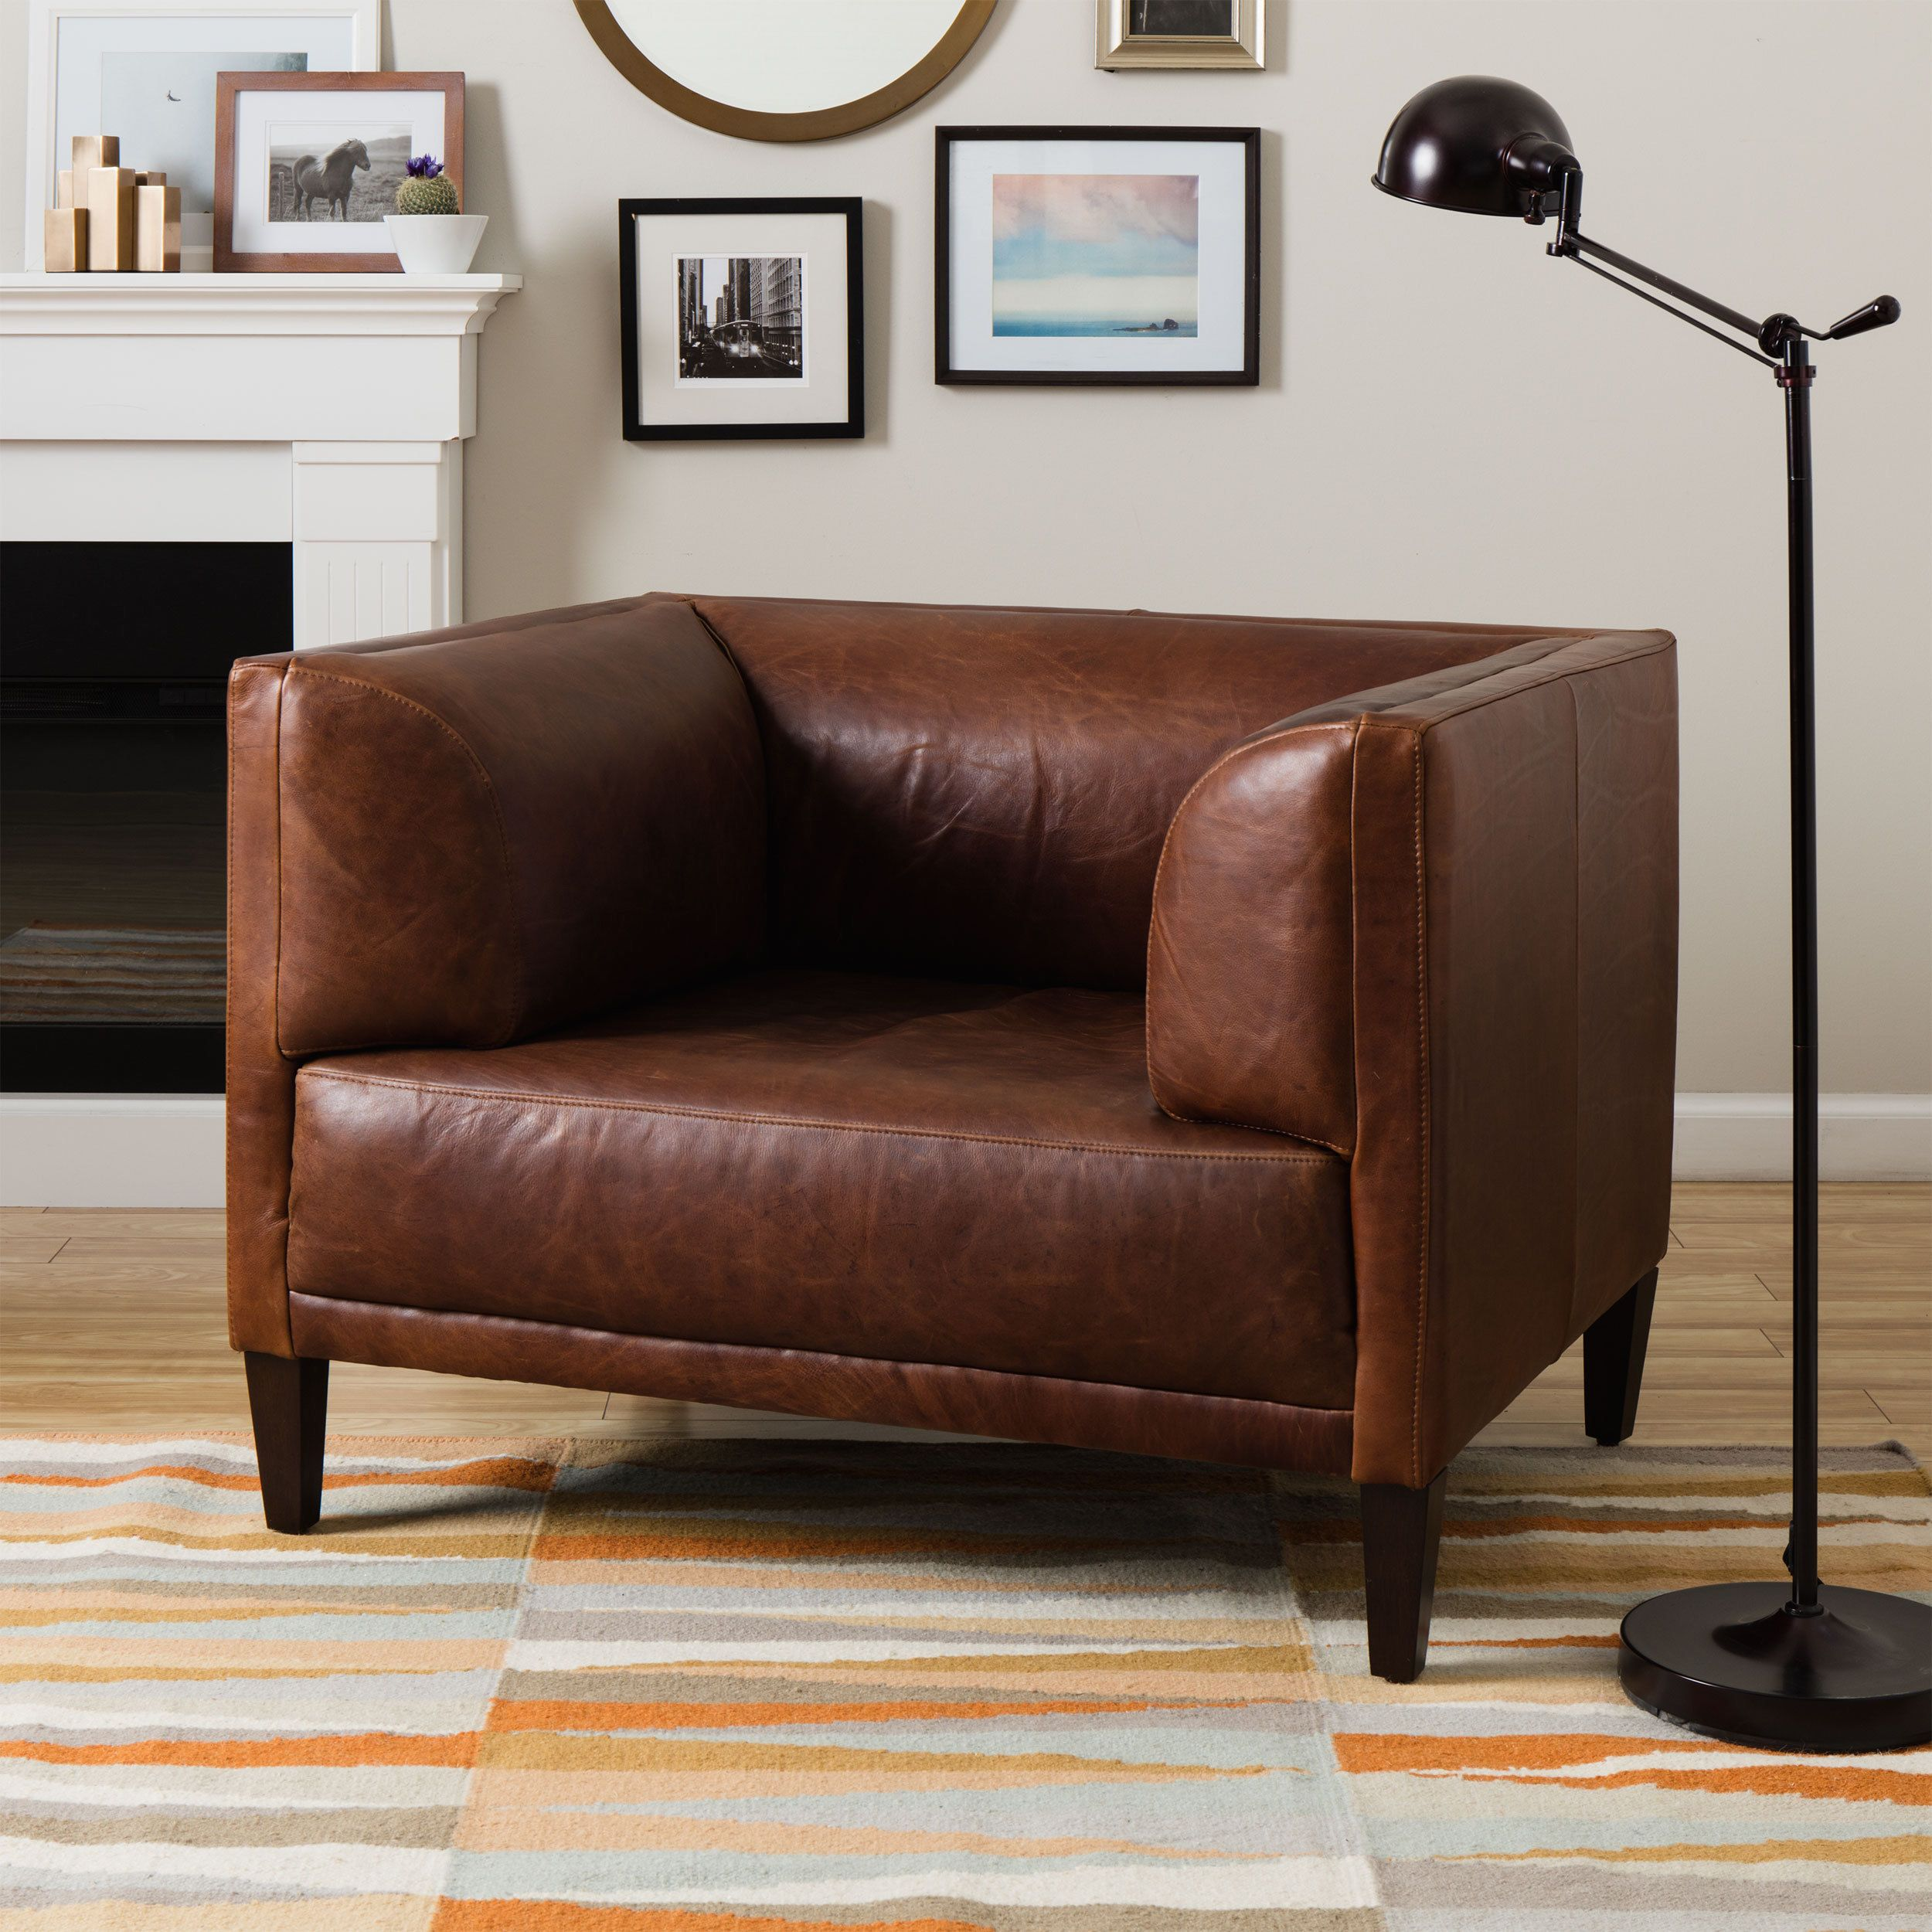 Online Shopping Bedding Furniture Electronics Jewelry Clothing More Furniture Living Room Chairs Chair